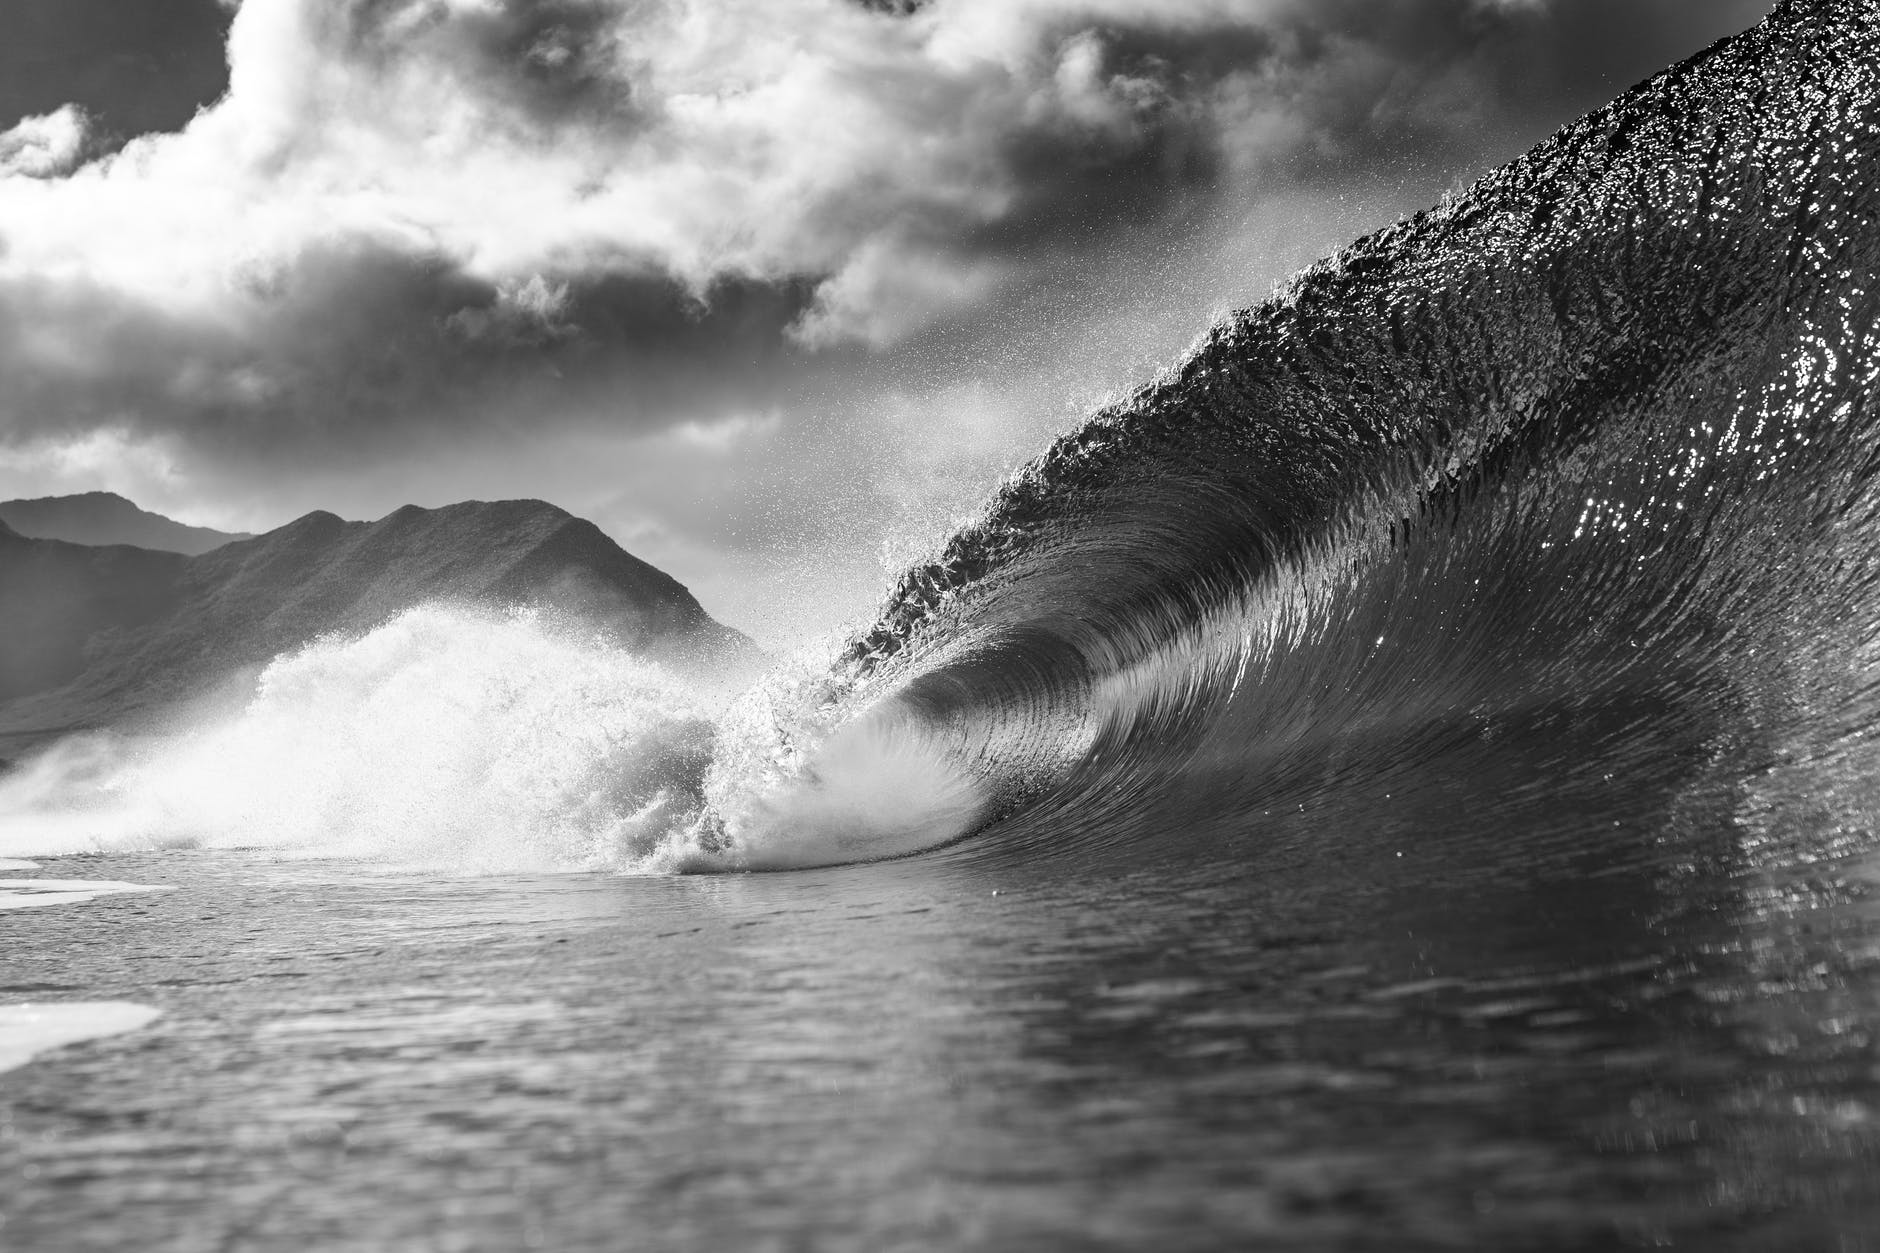 stormy ocean with big wave